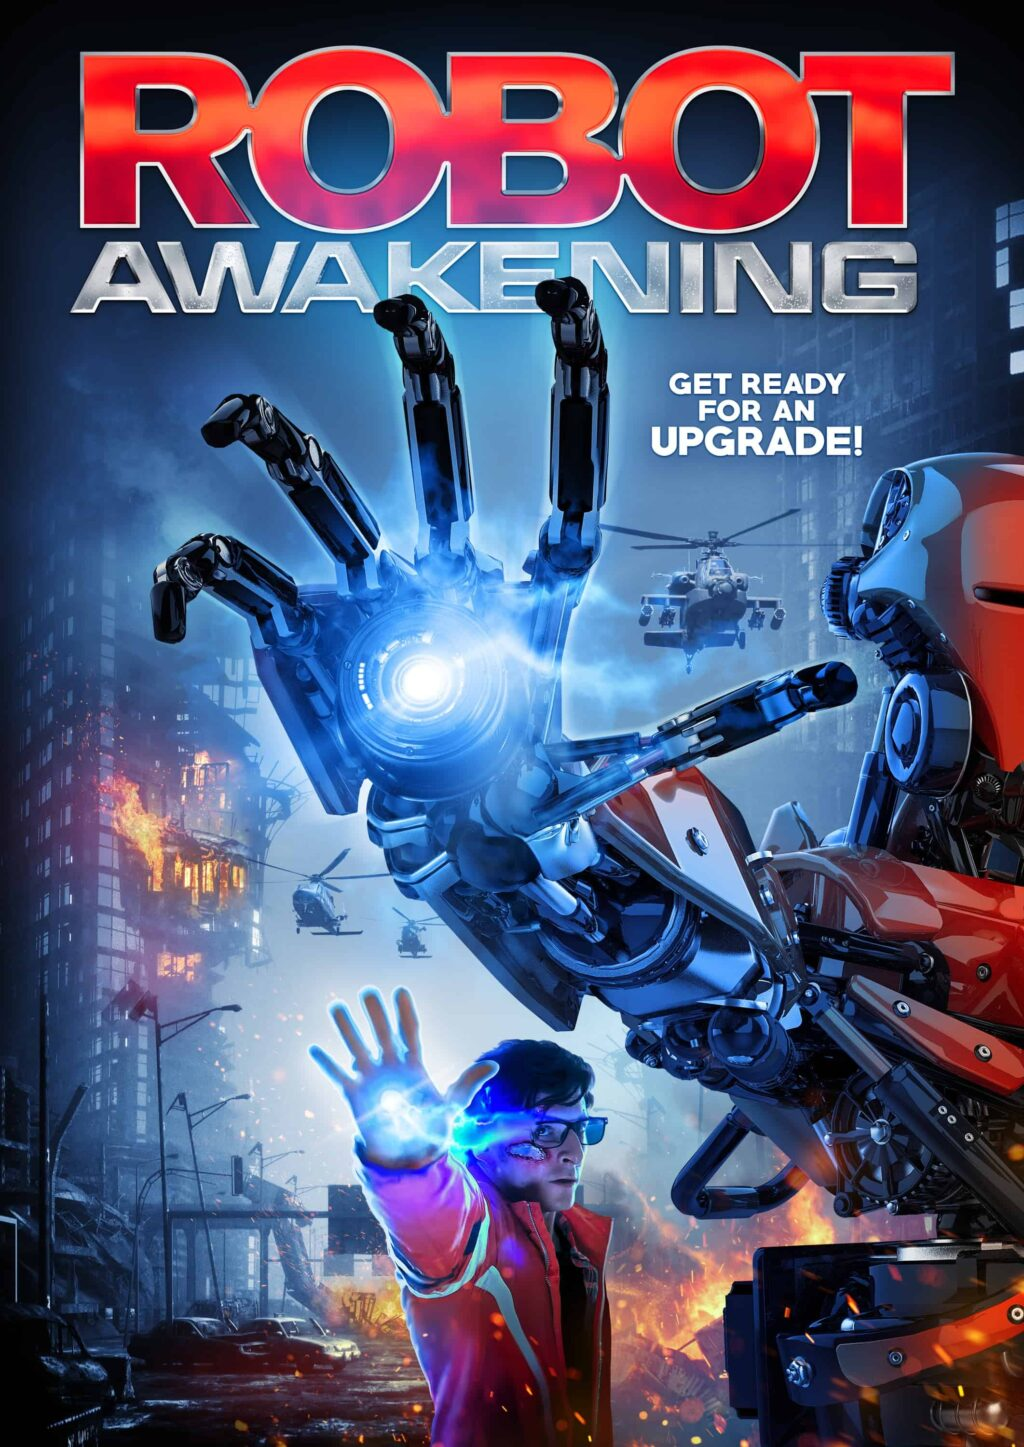 robot awak poster 1024x1447 - Trailer: Nerd Realizes He's Actually a Powerful Cyborg in Hysterical Horror-Comedy ROBOT AWAKENING